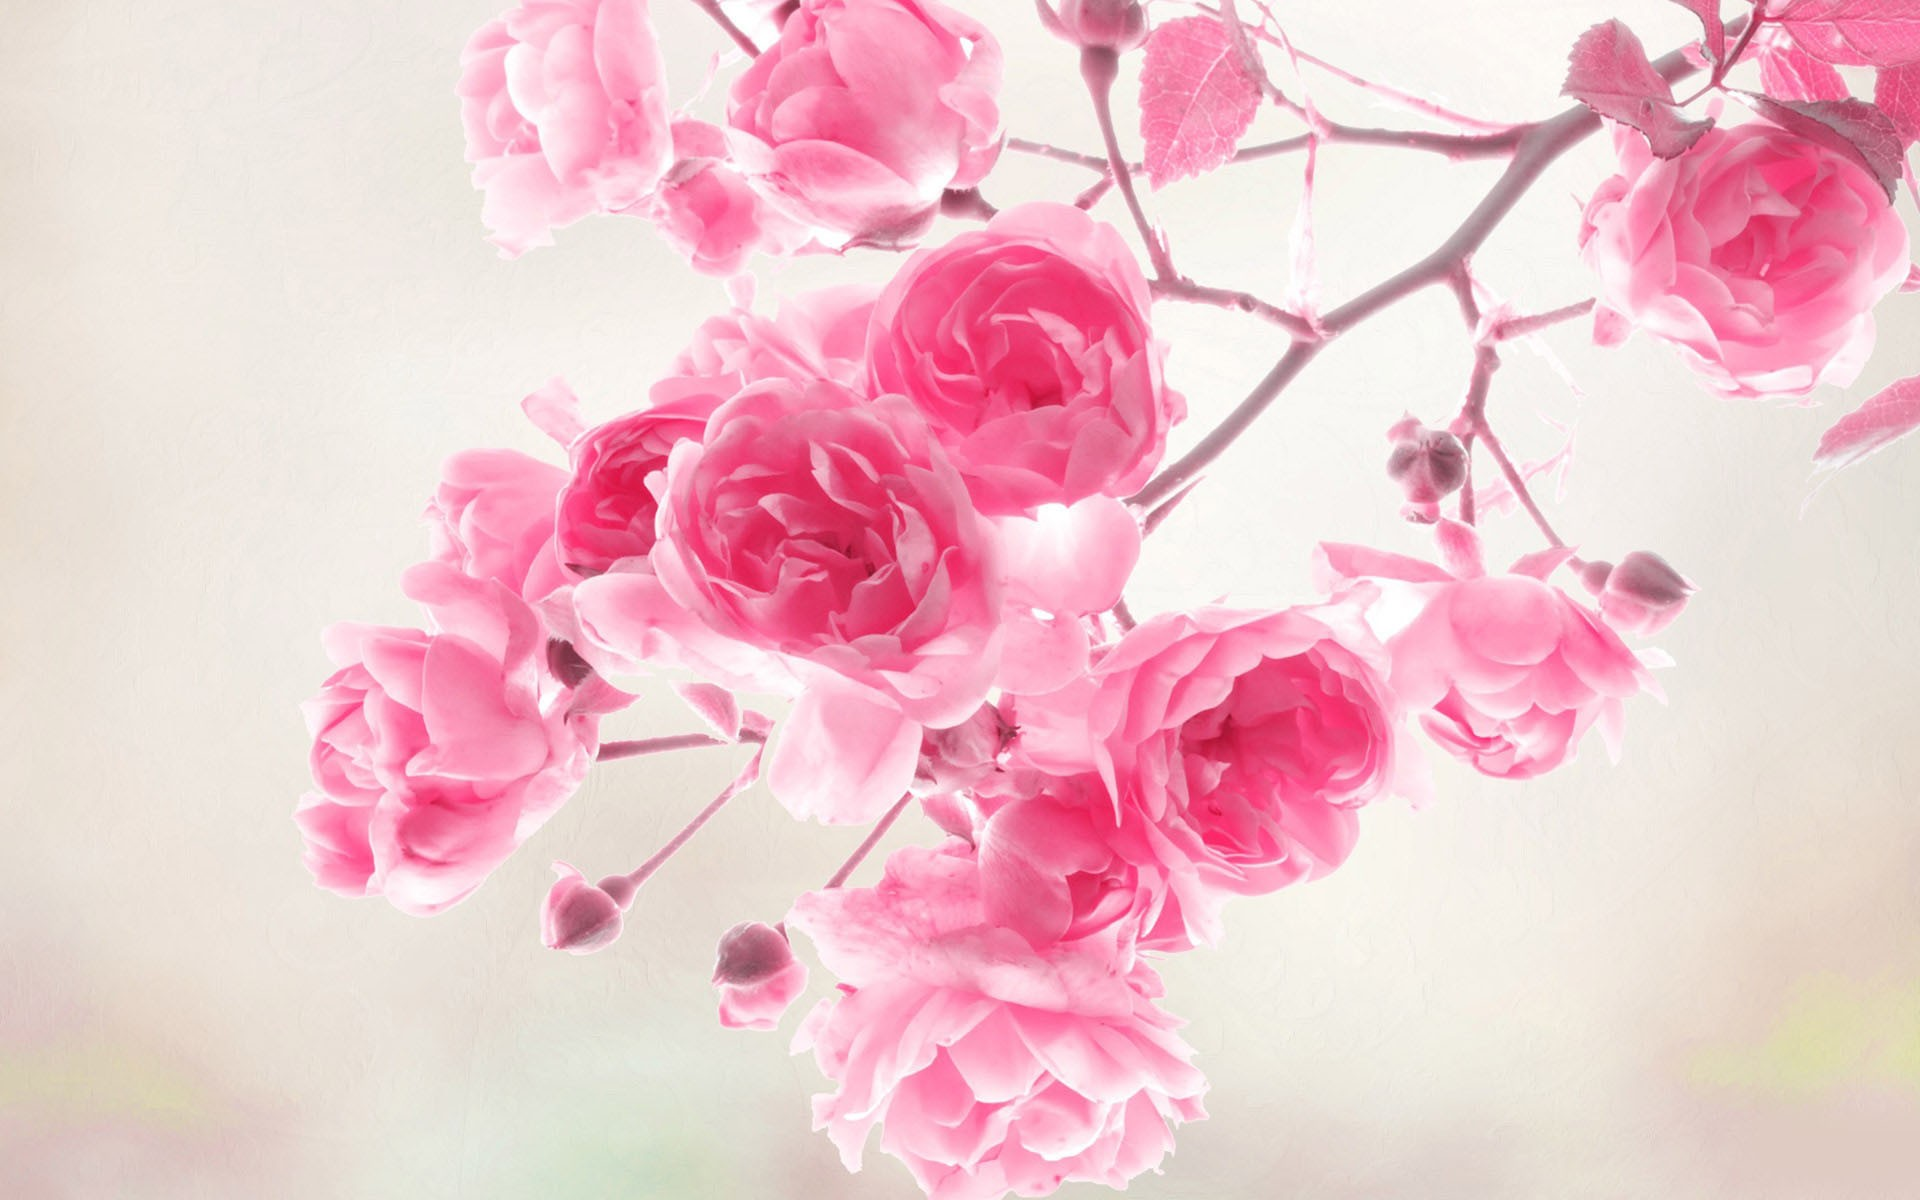 45+ flowers wallpapers ·① download free beautiful full hd